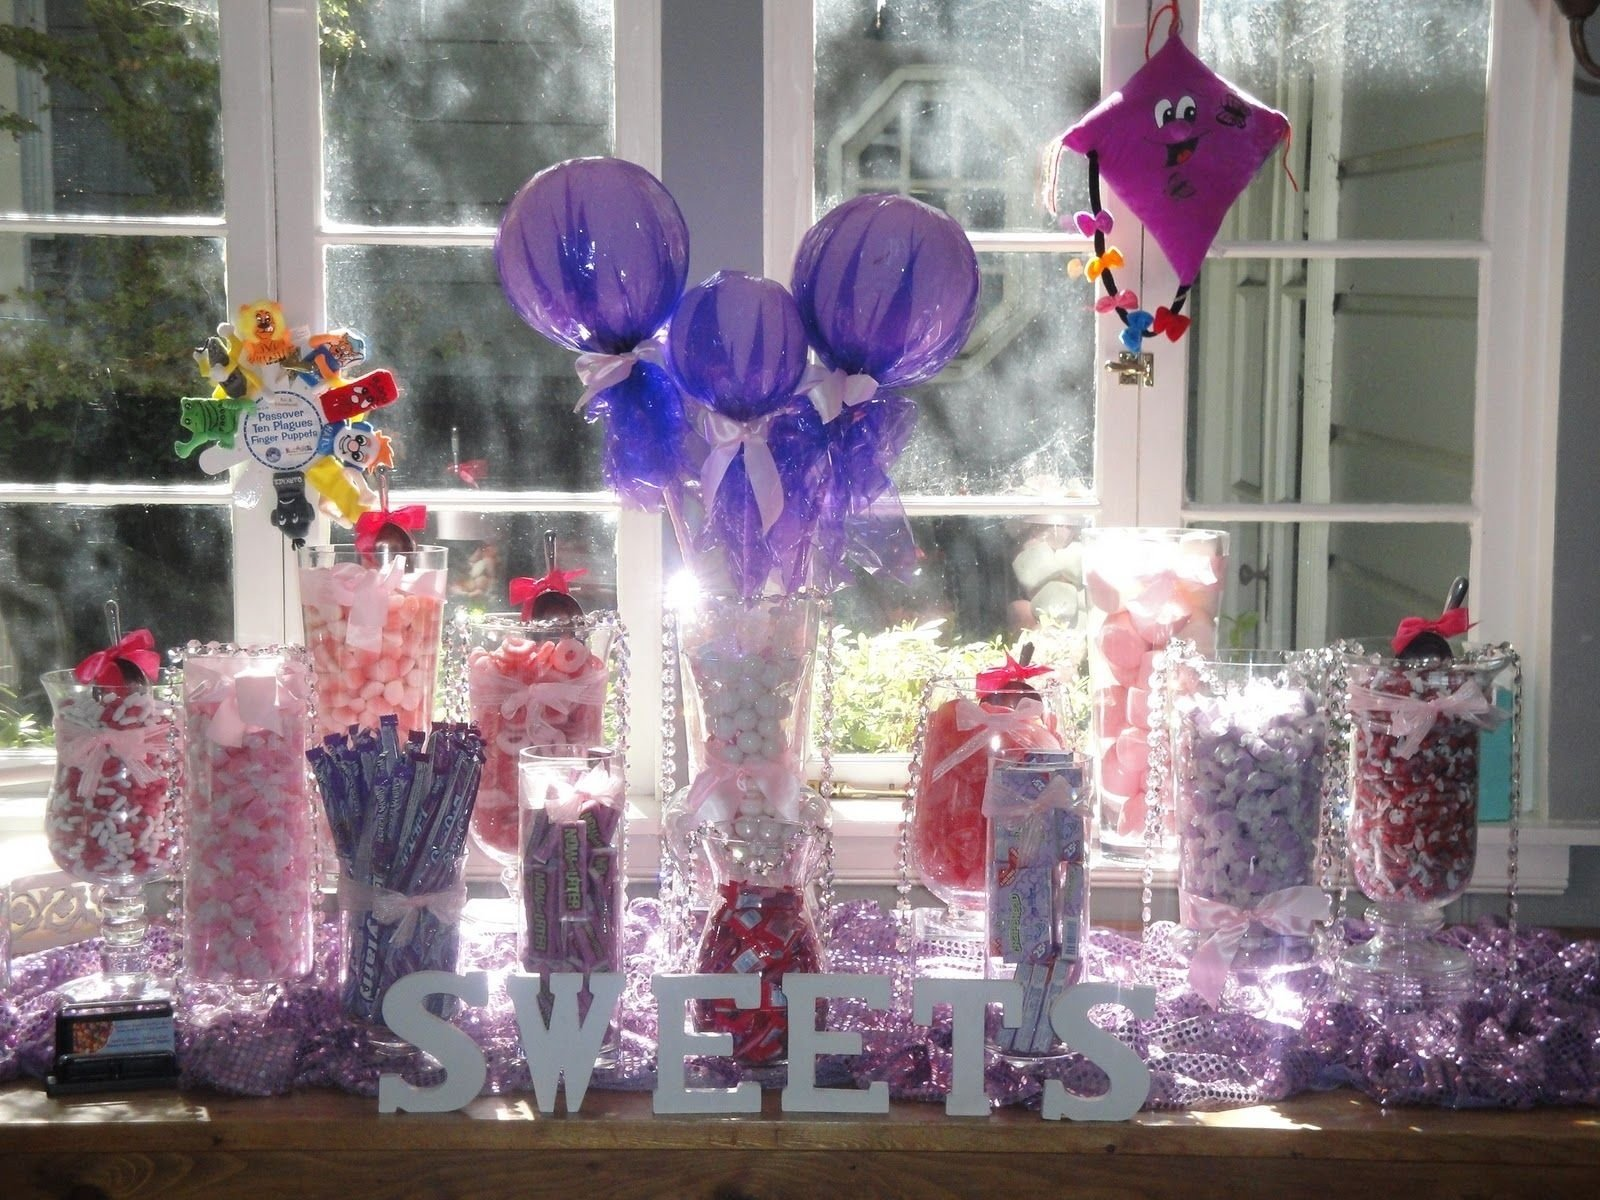 10 Amazing Sweet 16 Party Ideas Pinterest sweet sixteen party ideas though it all their friends its